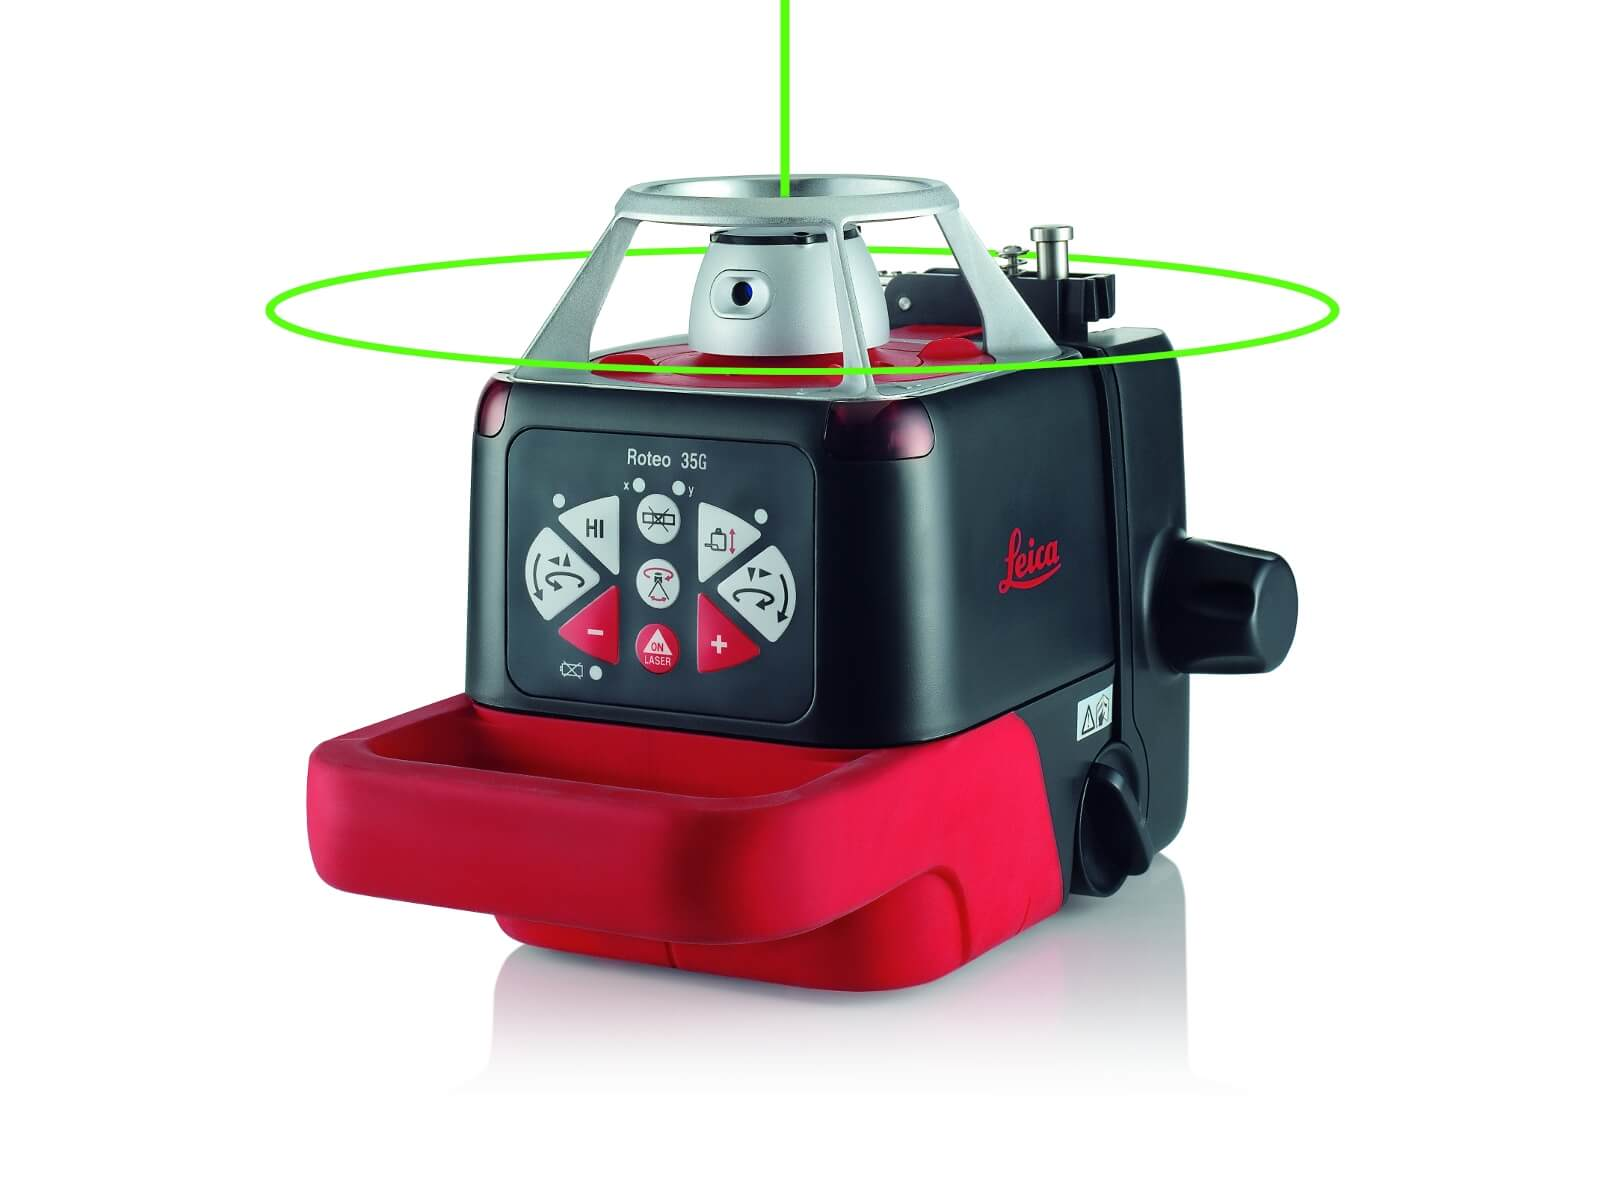 Leica Roteo Green Rotating Laser 35G ES5126